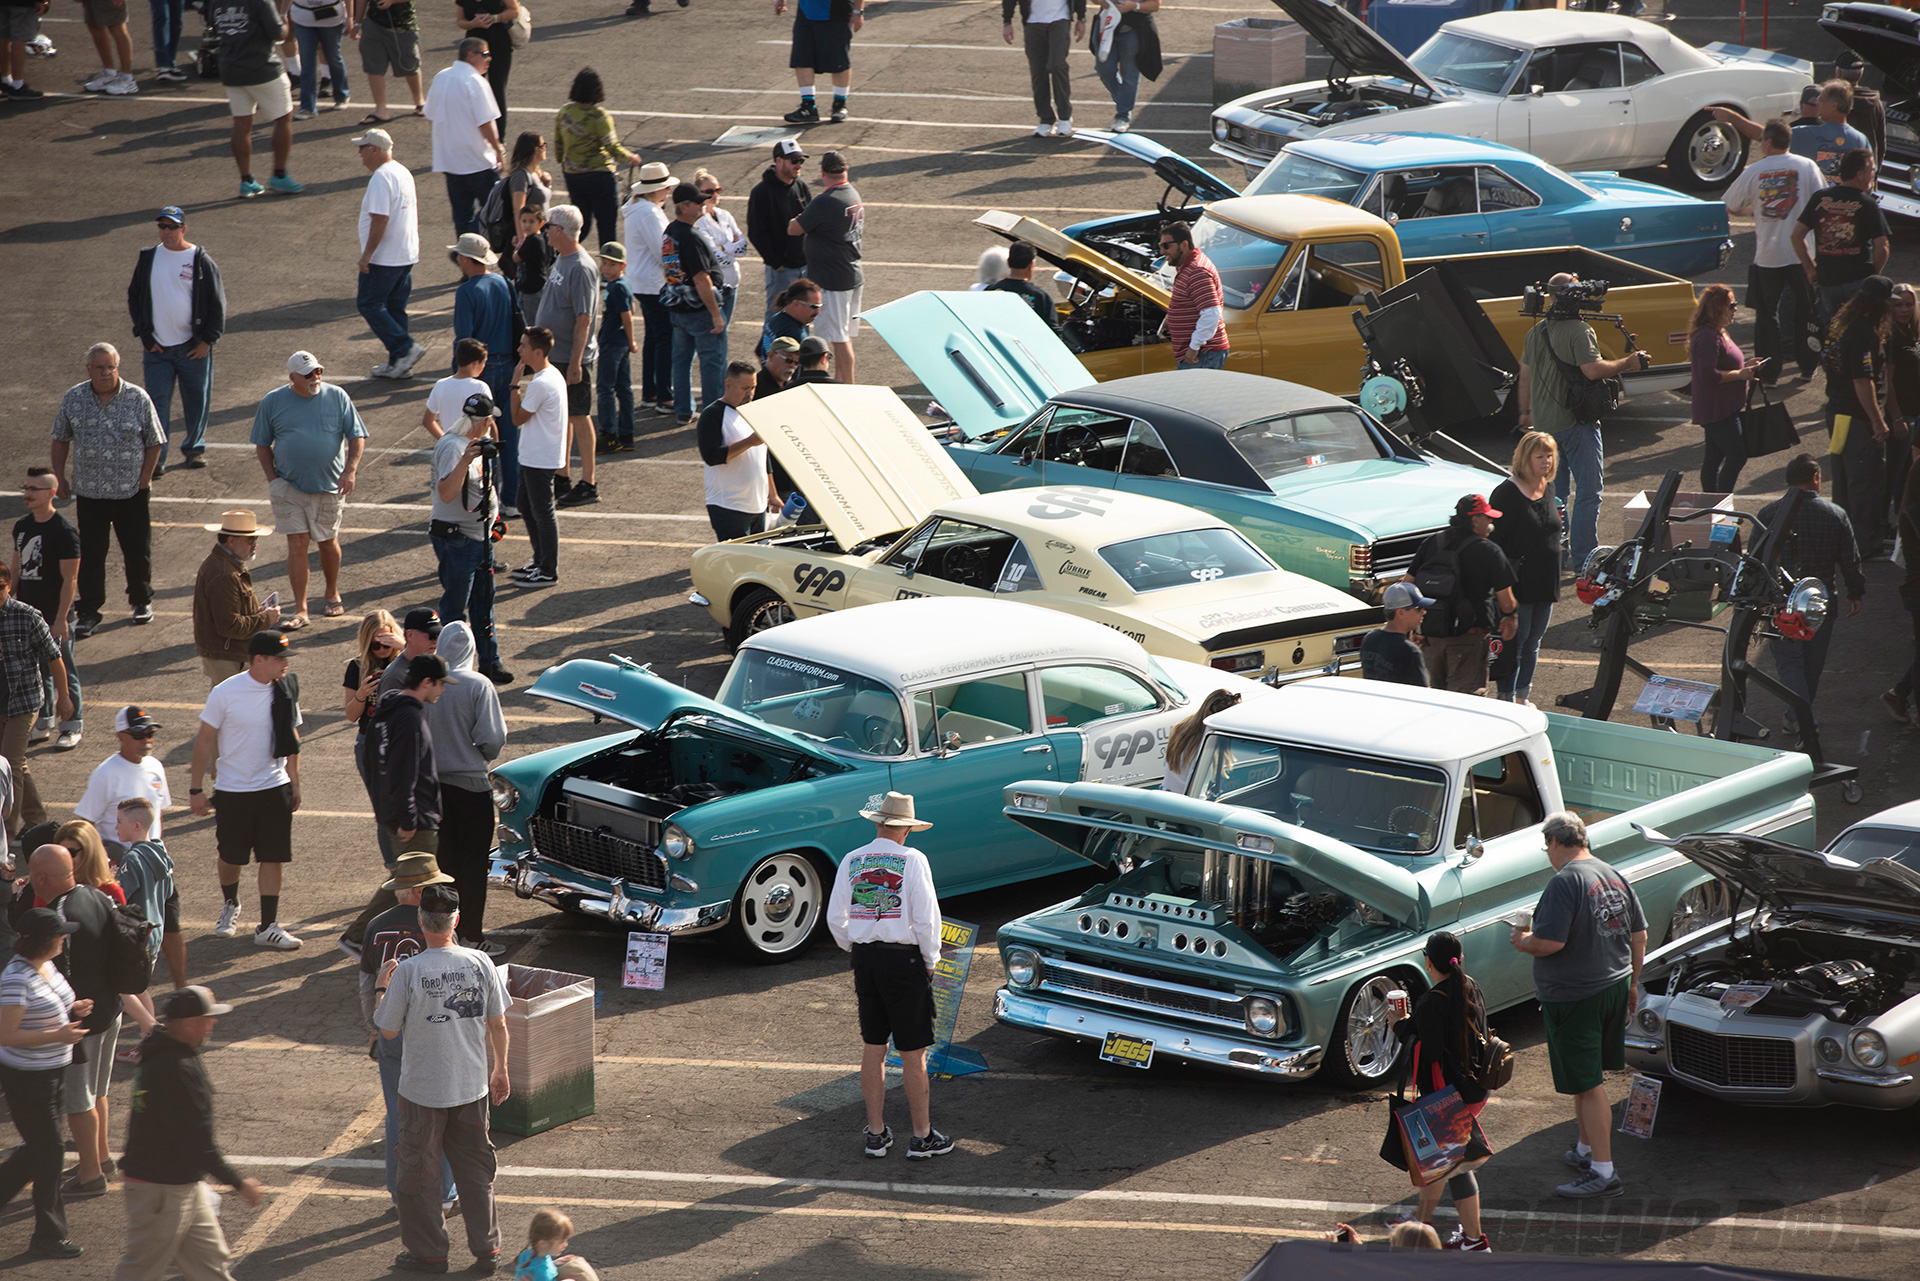 aerial shot of some of the classic cars on display at the In-N-Out Hot Rod 70th Celebration